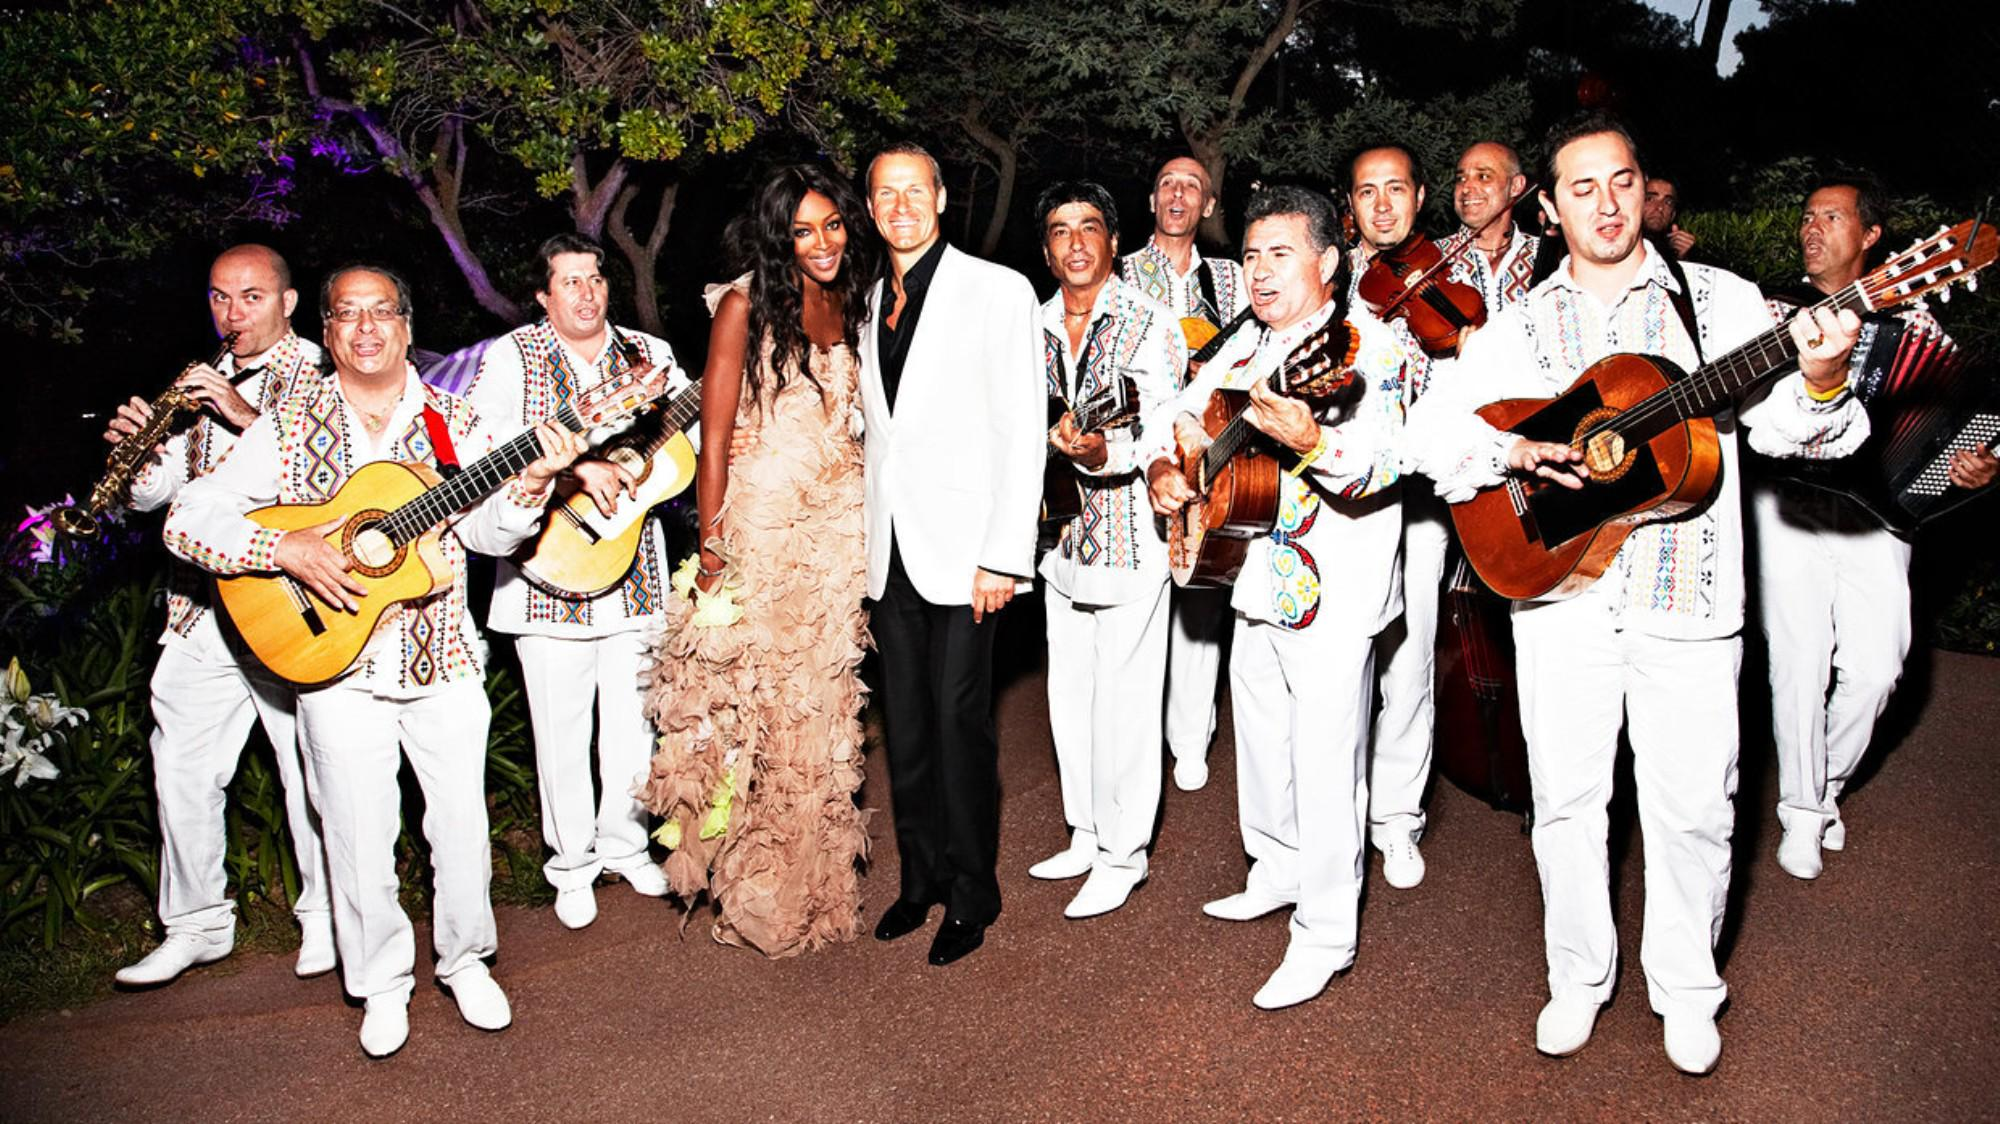 Inside @NaomiCampbell's  champagne soaked 45th birthday: http://t.co/KLvmO730hz http://t.co/2dDcGseUf7